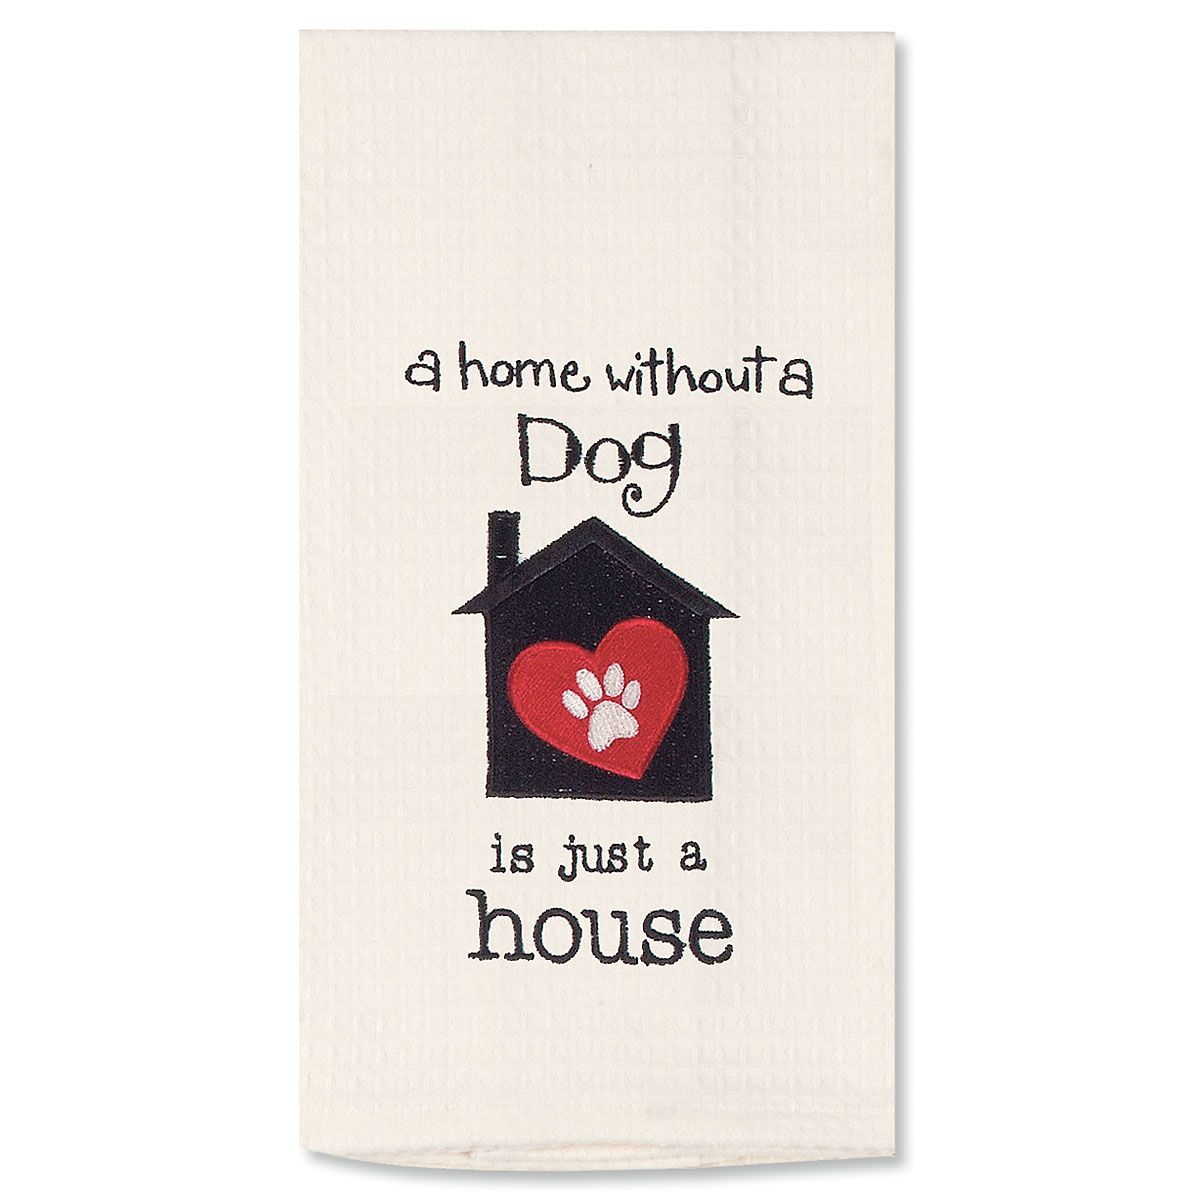 Embroidered Pet Waffle Towel - Dog House